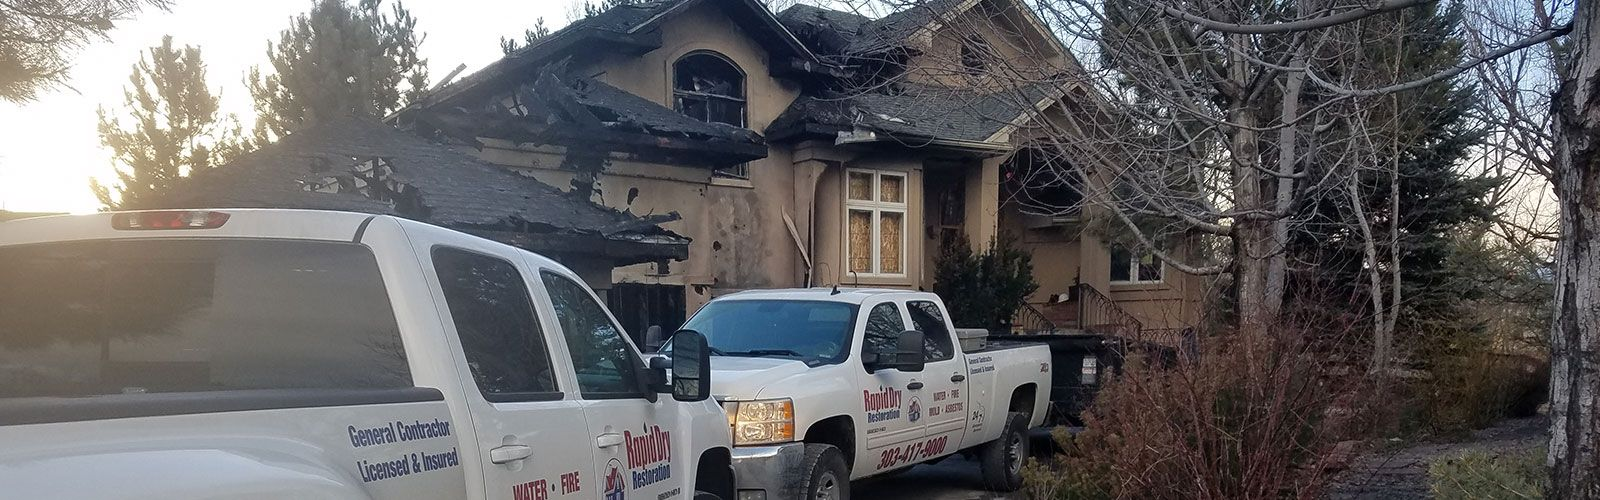 House in Colorado being restored from fire damage by Rapid Dry Colorado